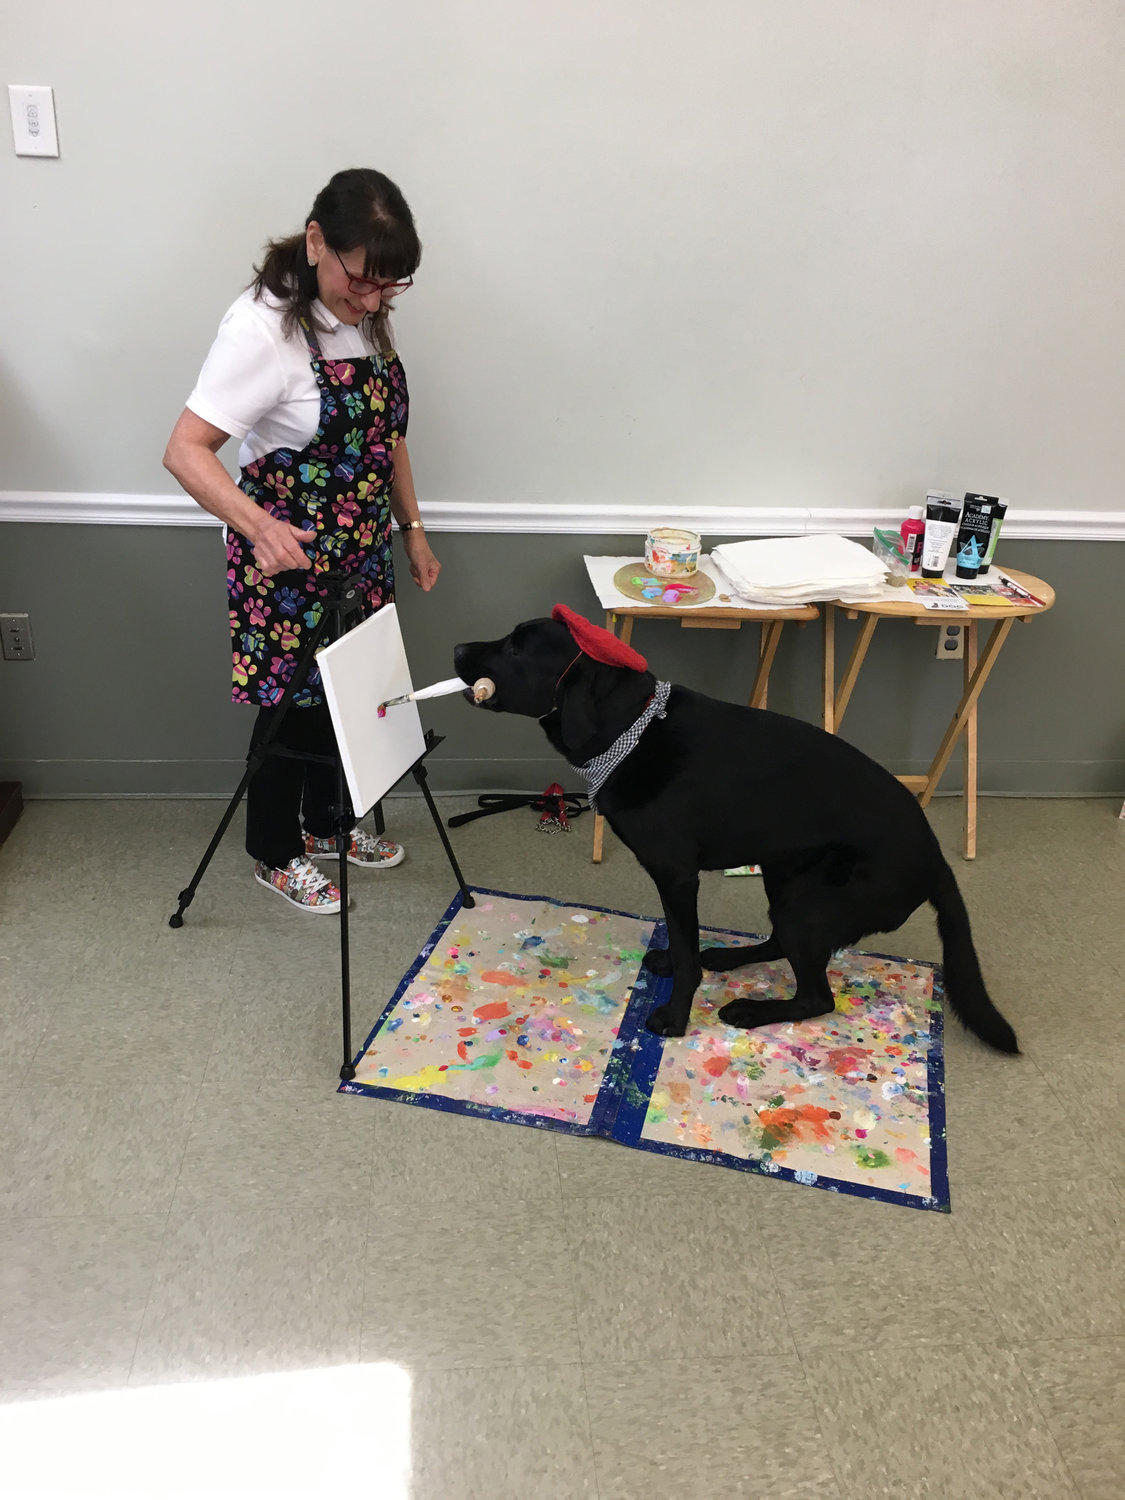 Dagger Dogvinci, who has painted since he was 2½, has done more than 500 works of art.